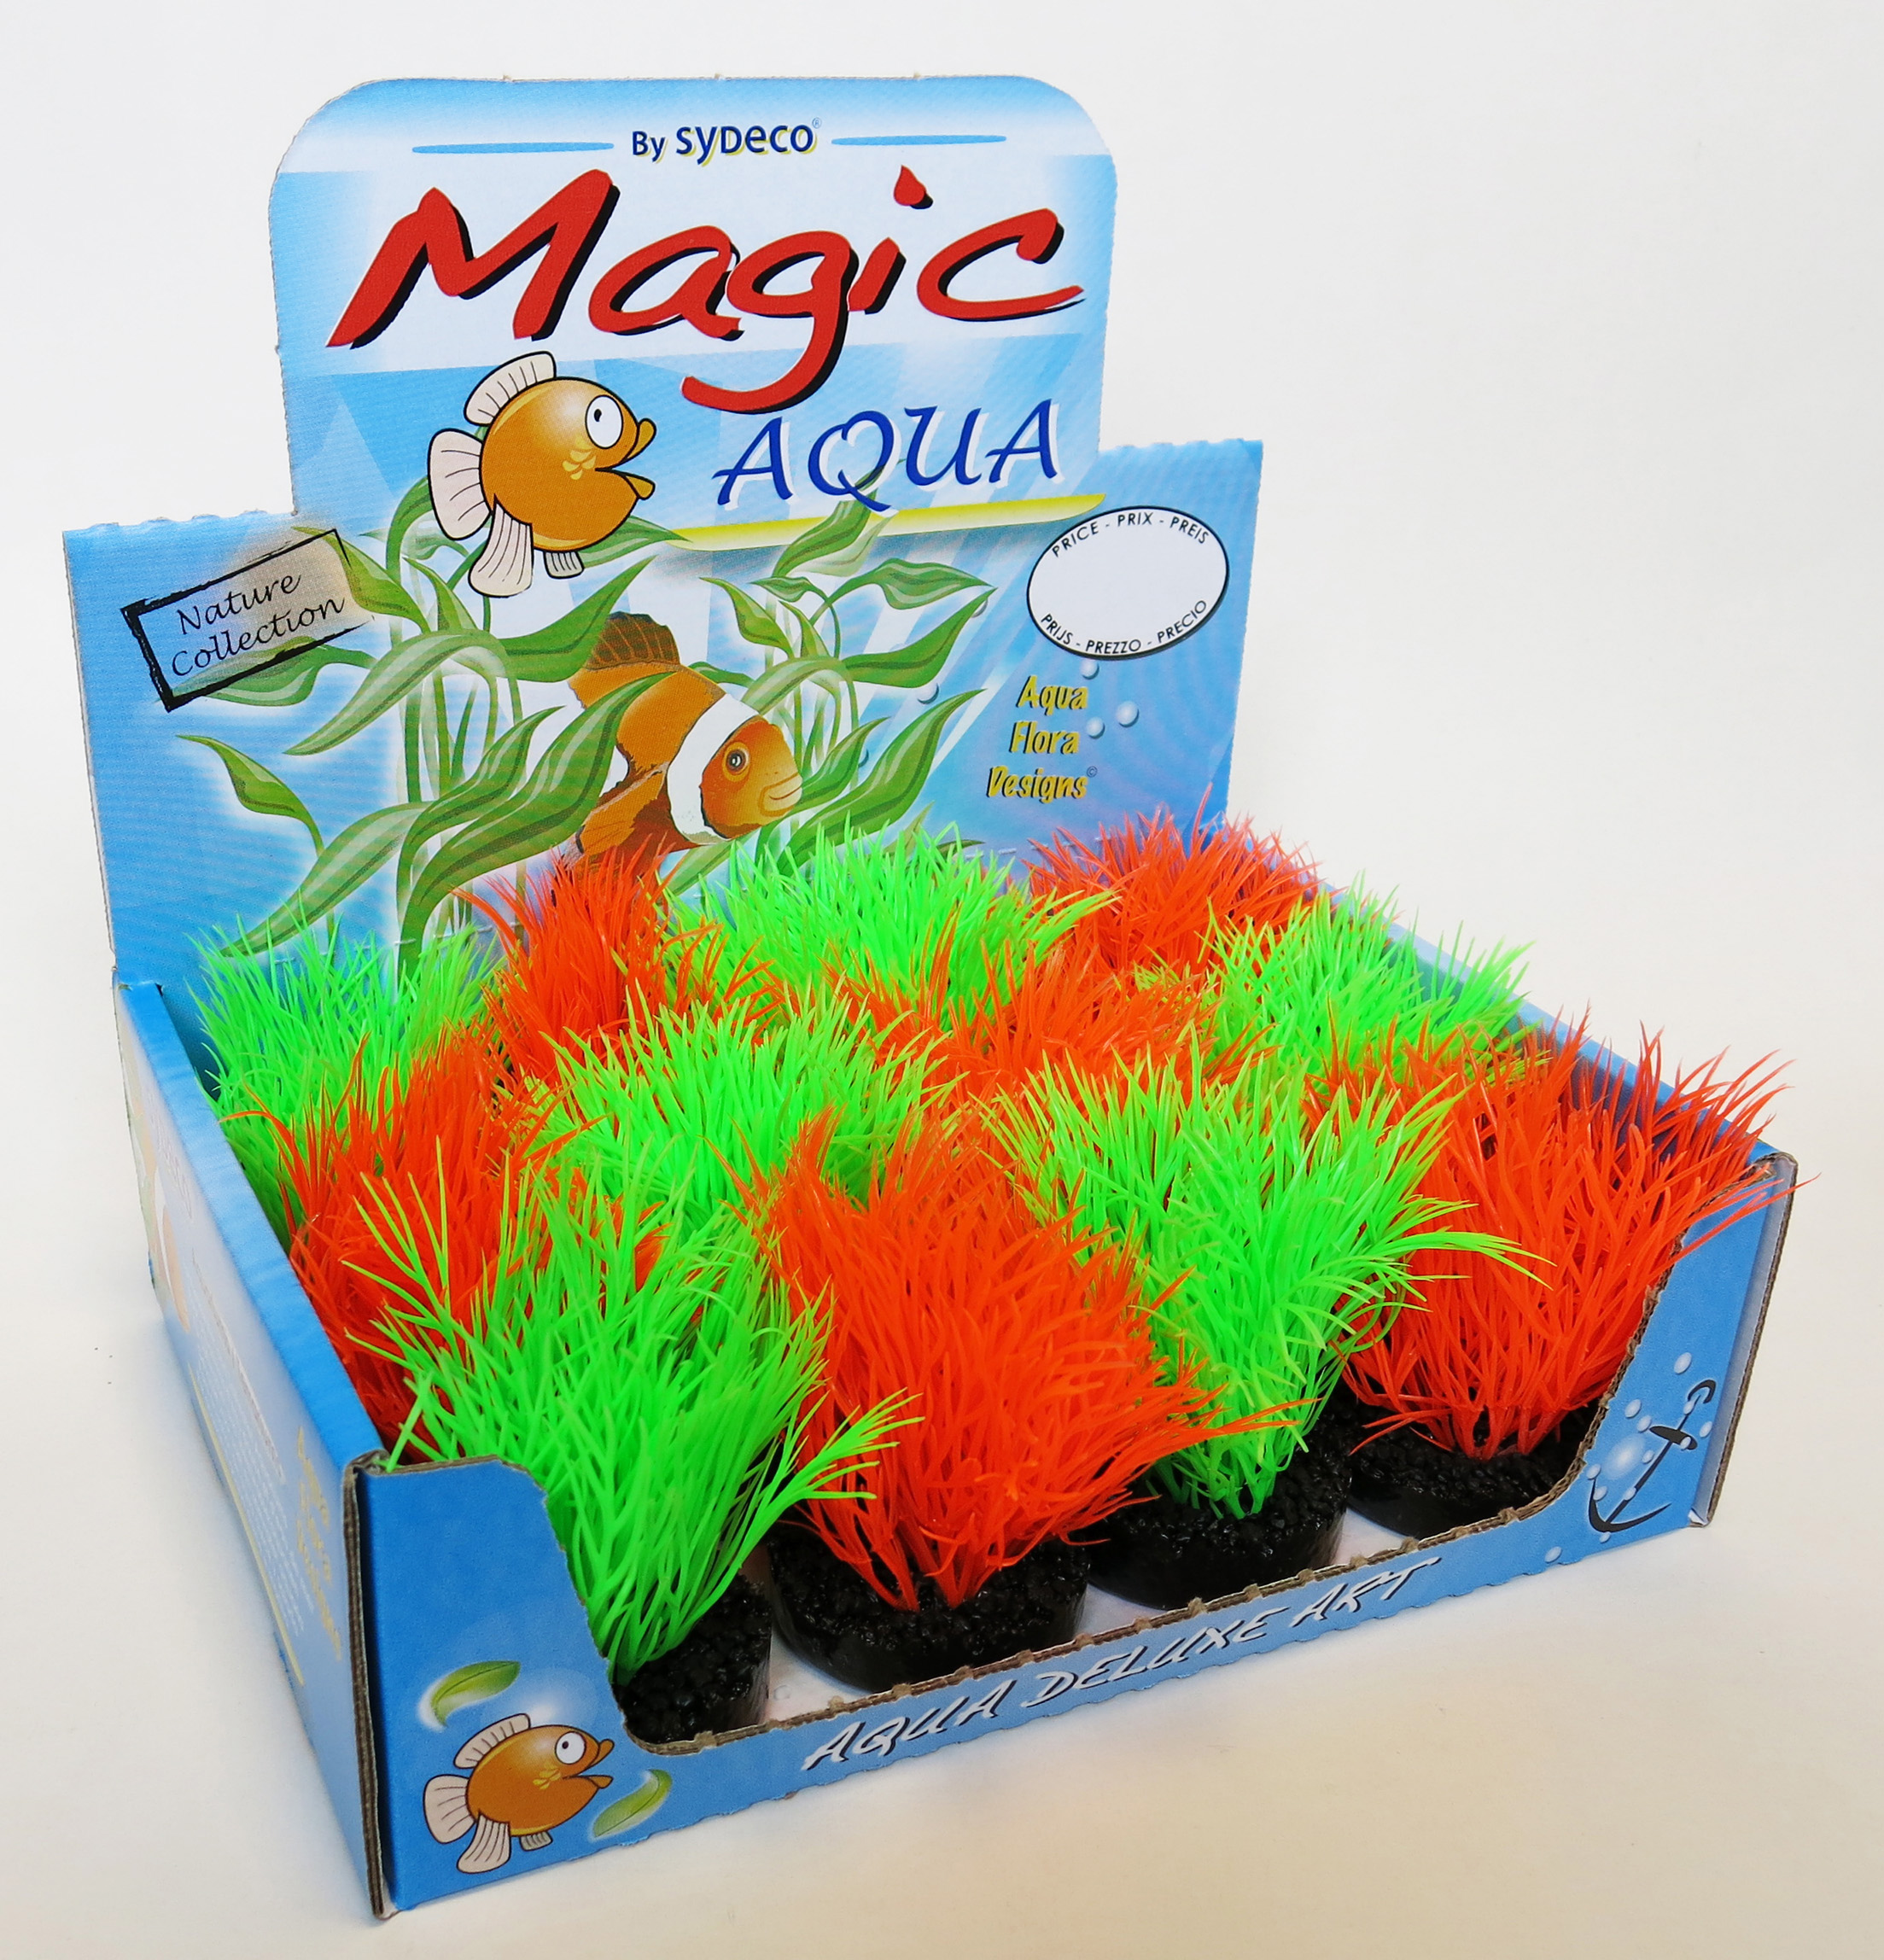 Растение  Magic Aqua Fun  11см от Sydeco, Франция